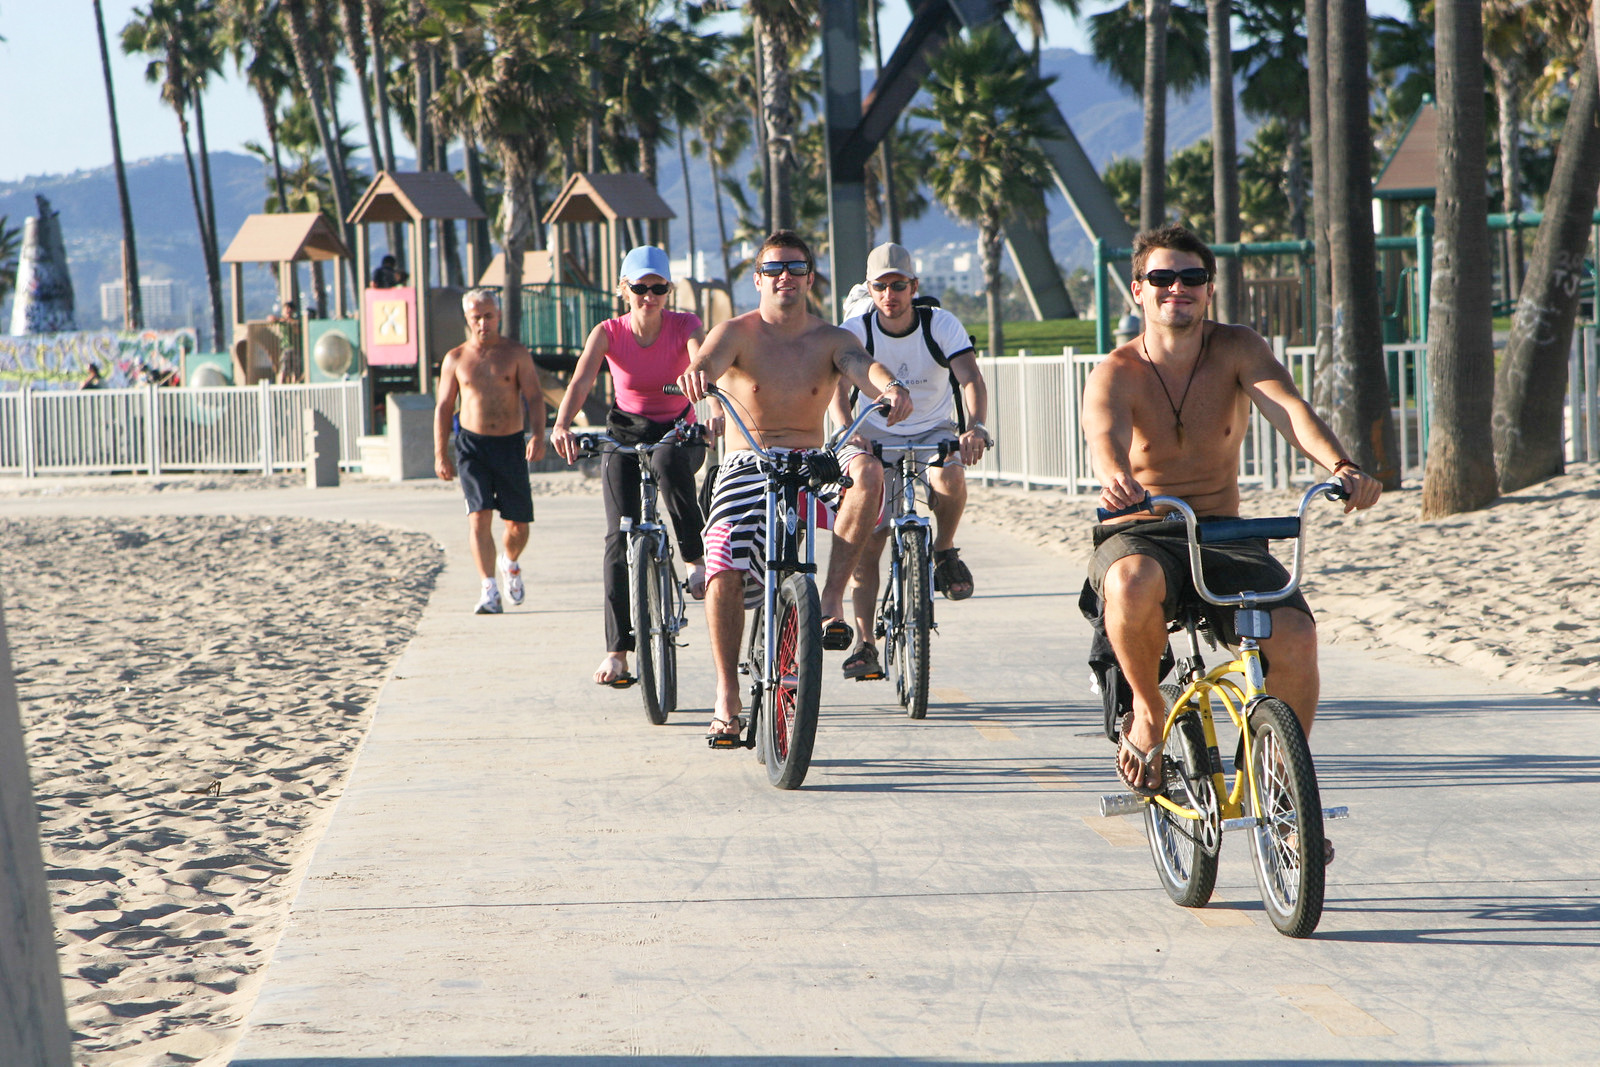 Rent Some Transport And And Explore Venice On A Bike Skate Board Segway Io Hawk Blades Or Roller Skates Venice Paparazzi Venice Beach Ca Photo Agency Community Info News Events